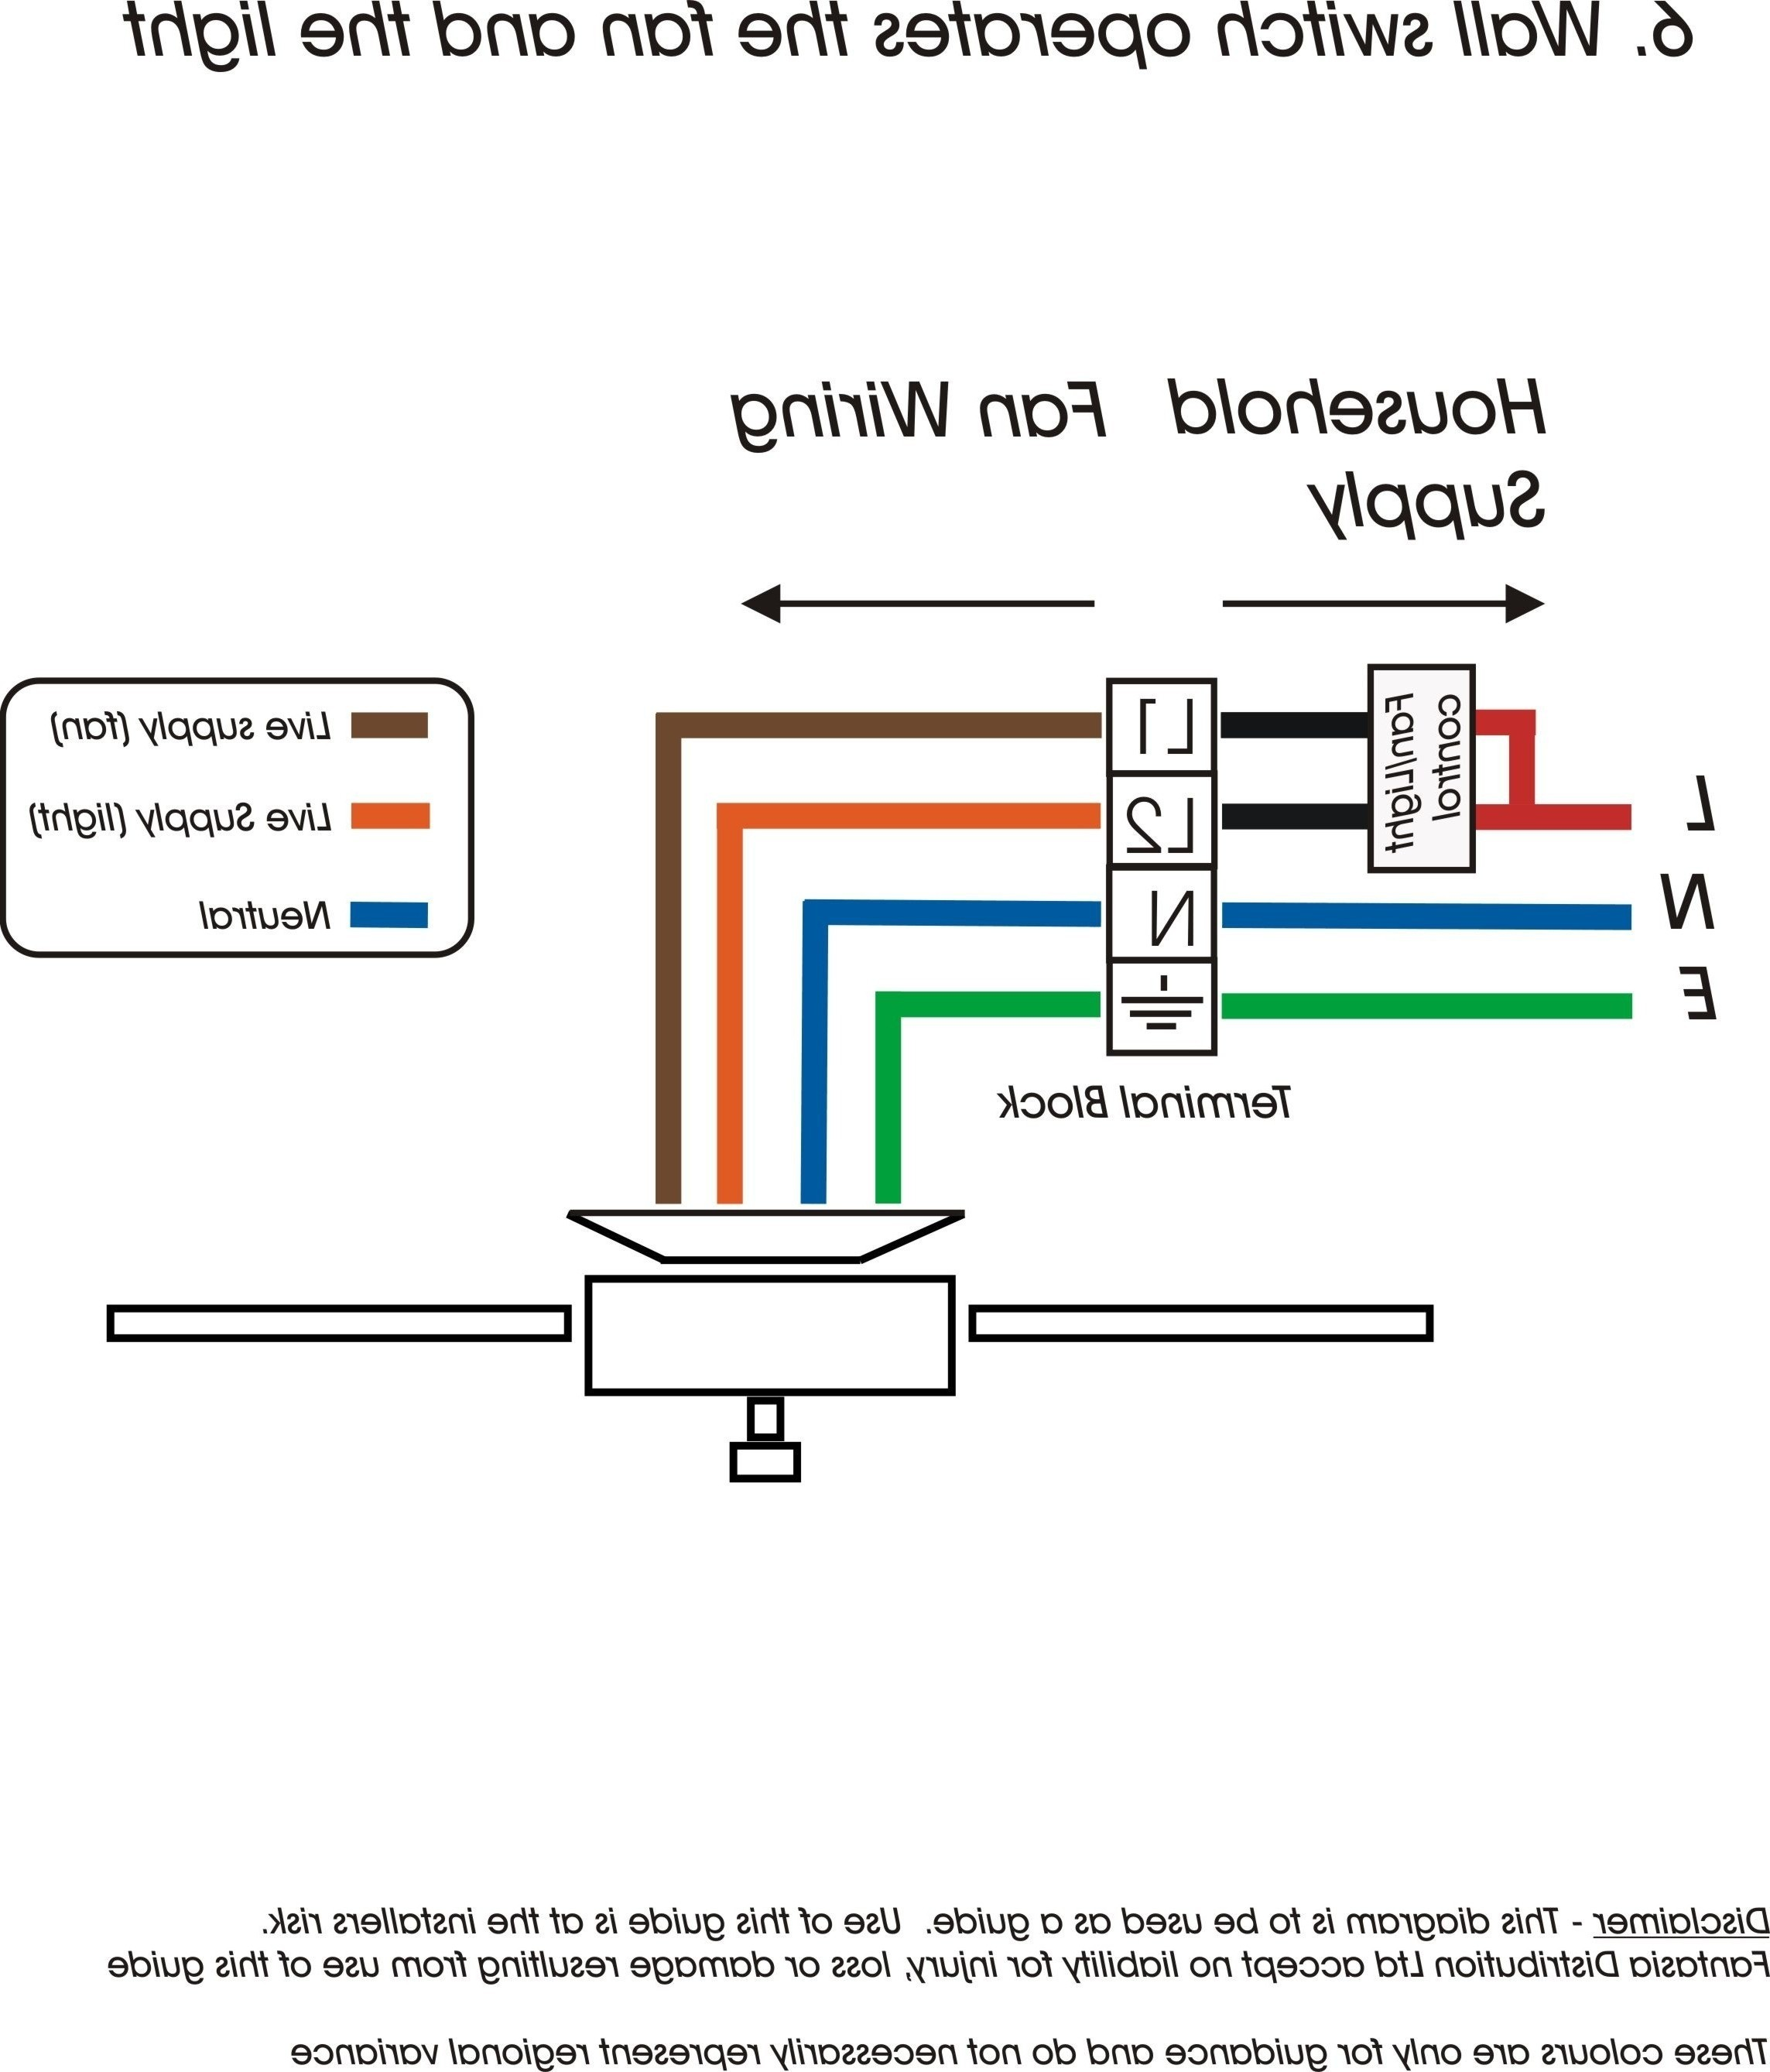 Wiring Diagram For 3 Way Switches Multiple Lights Refrence 3 Way Switch Wiring Diagram Inspirational Wiring Diagram 3 Way